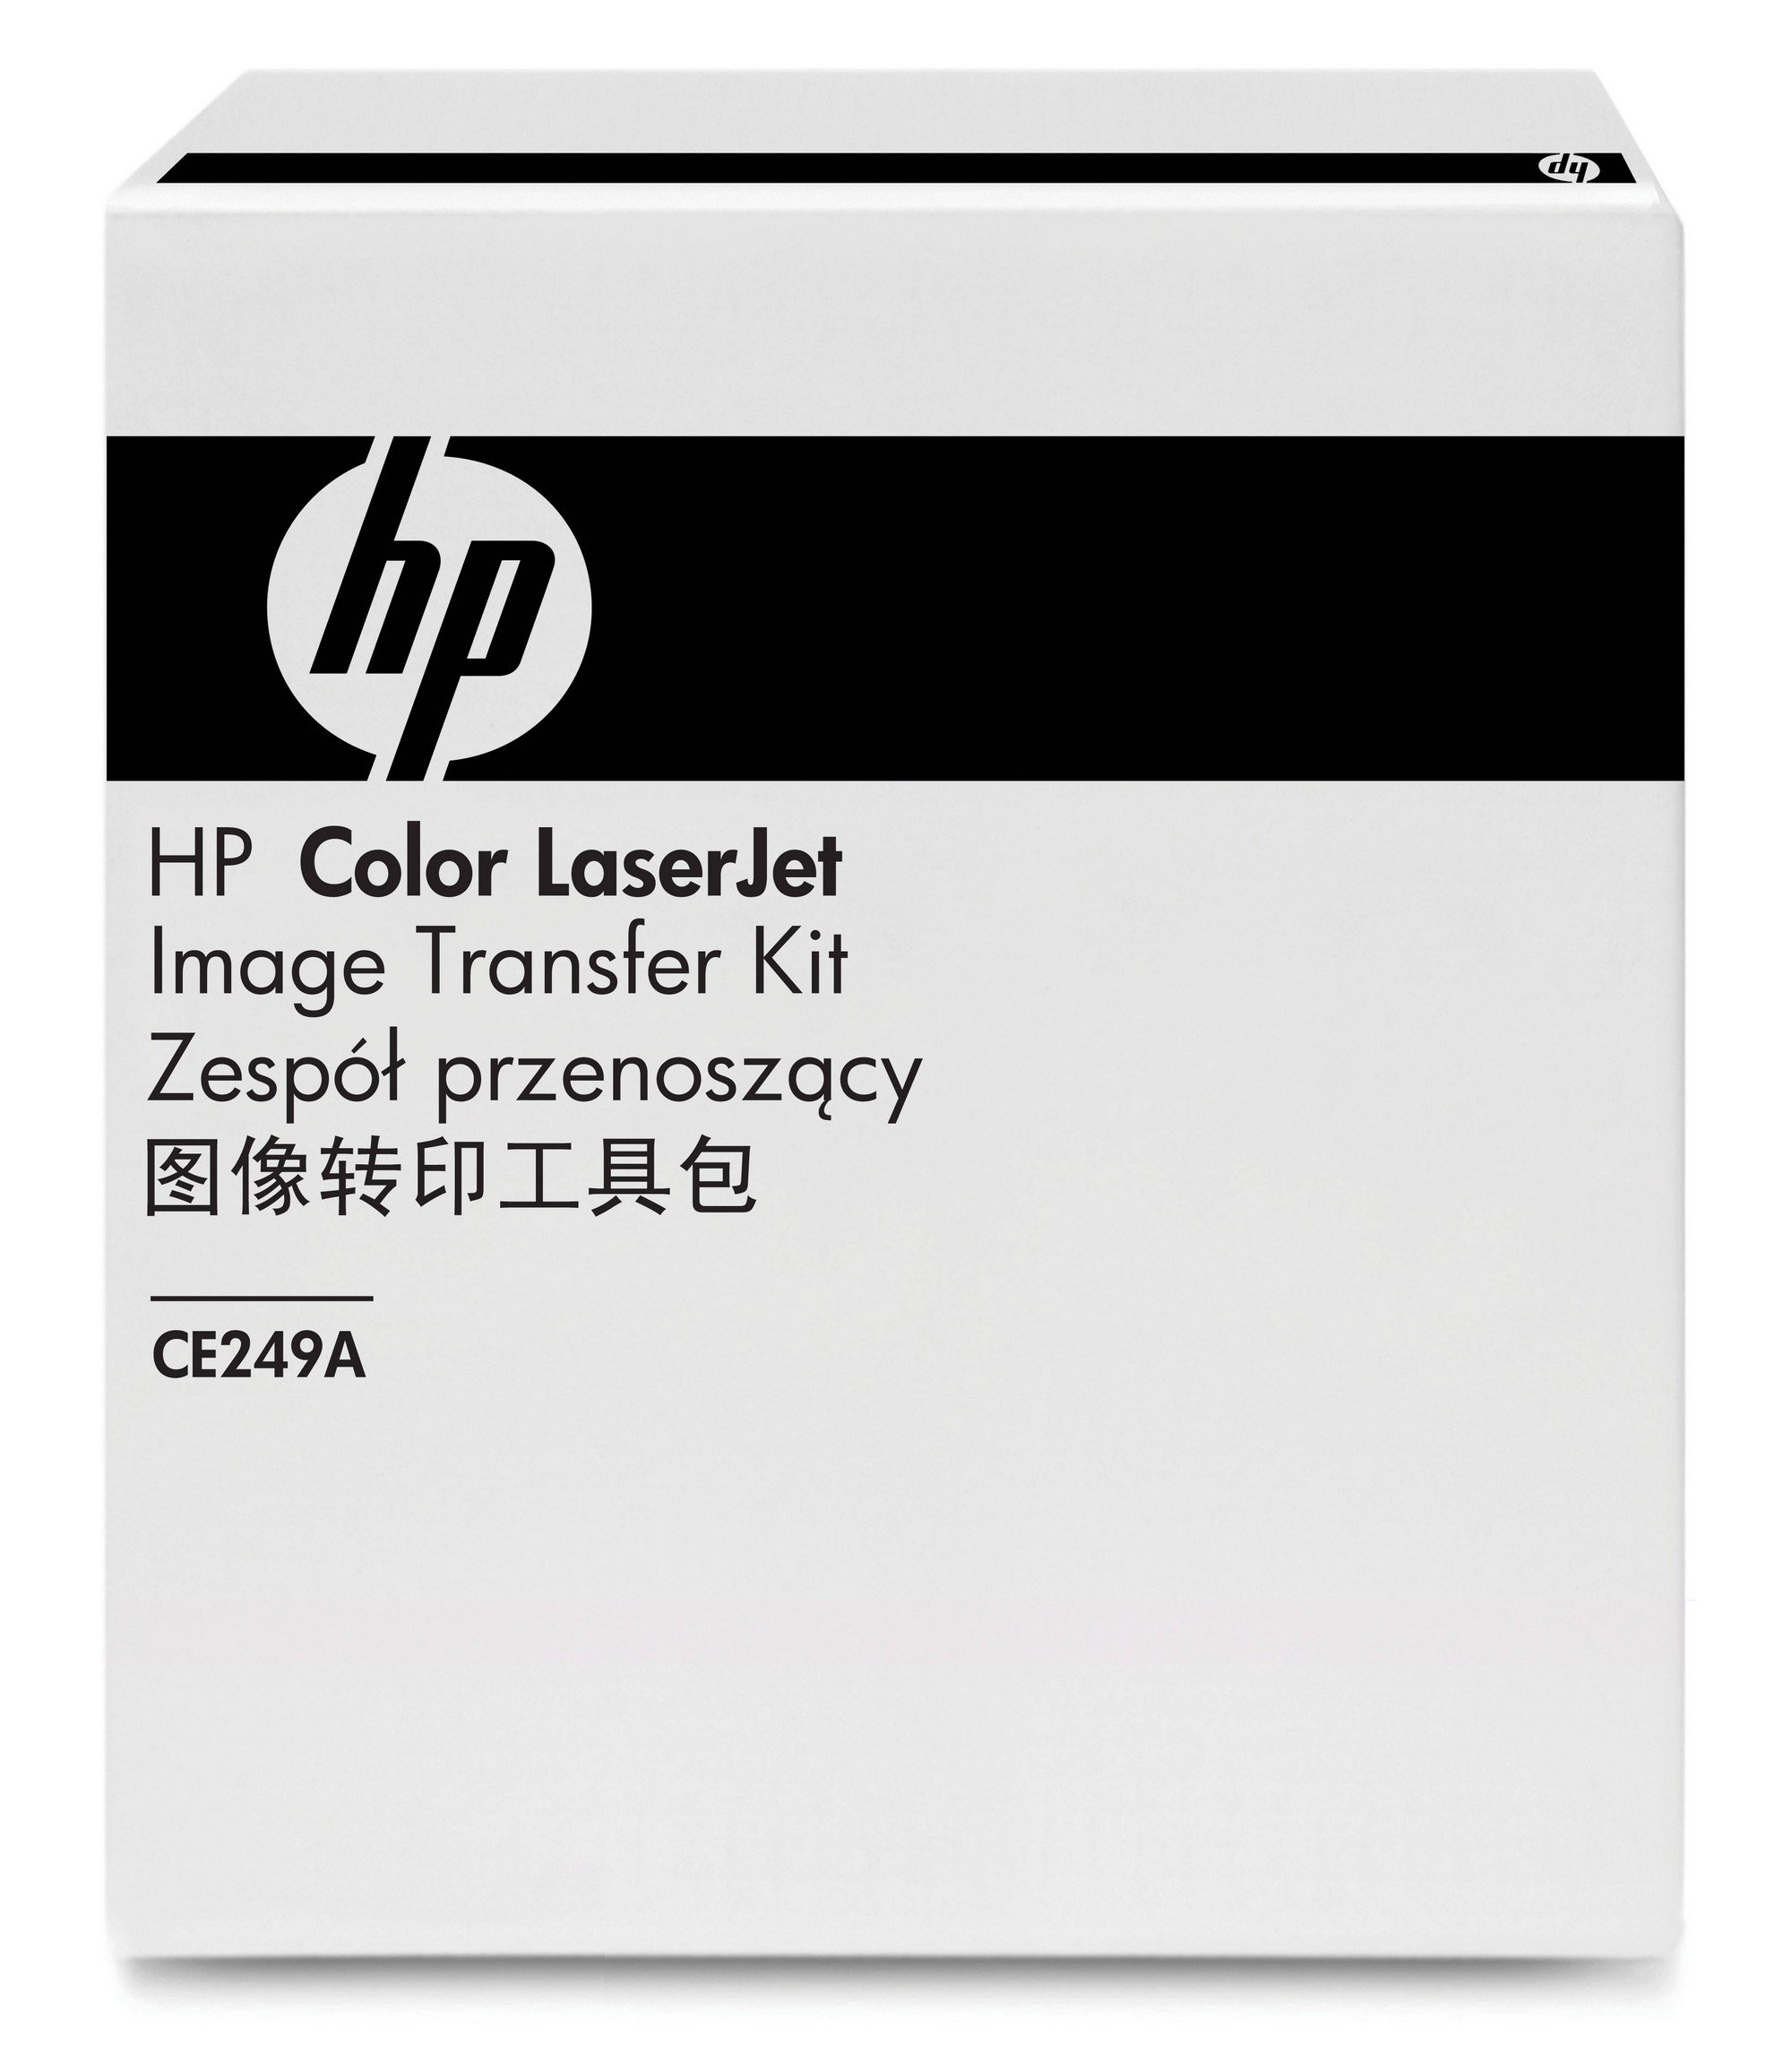 HP CE249A Color LaserJet Image Transfer Kit